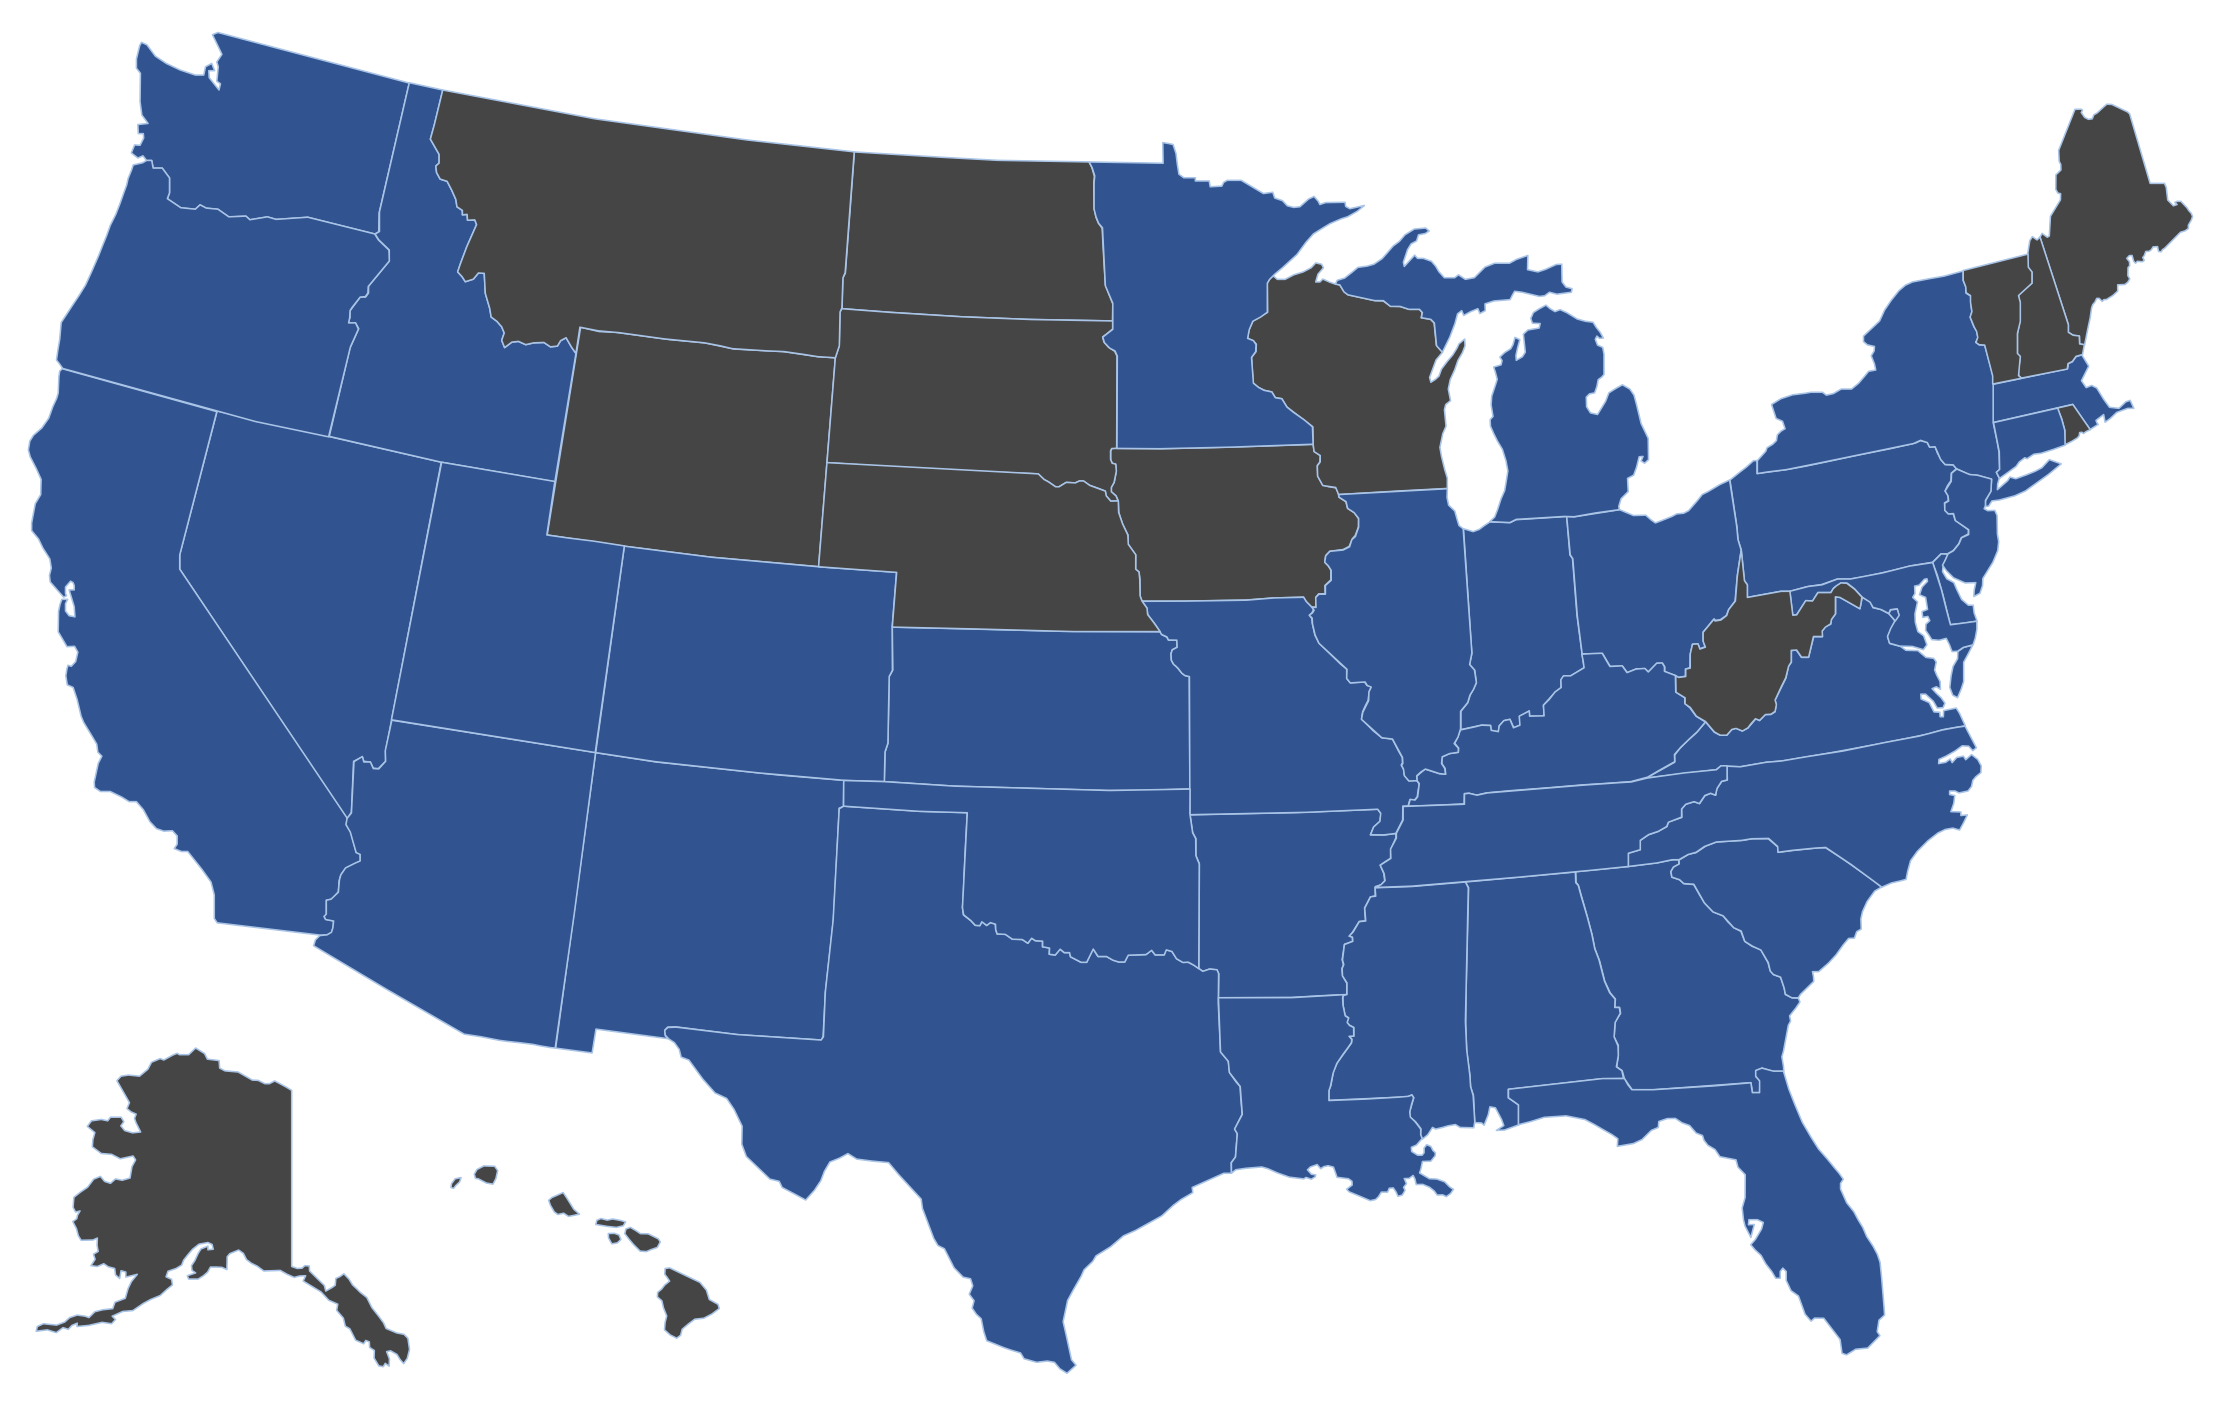 *States in blue denote a completed deal for an advisor on our team.